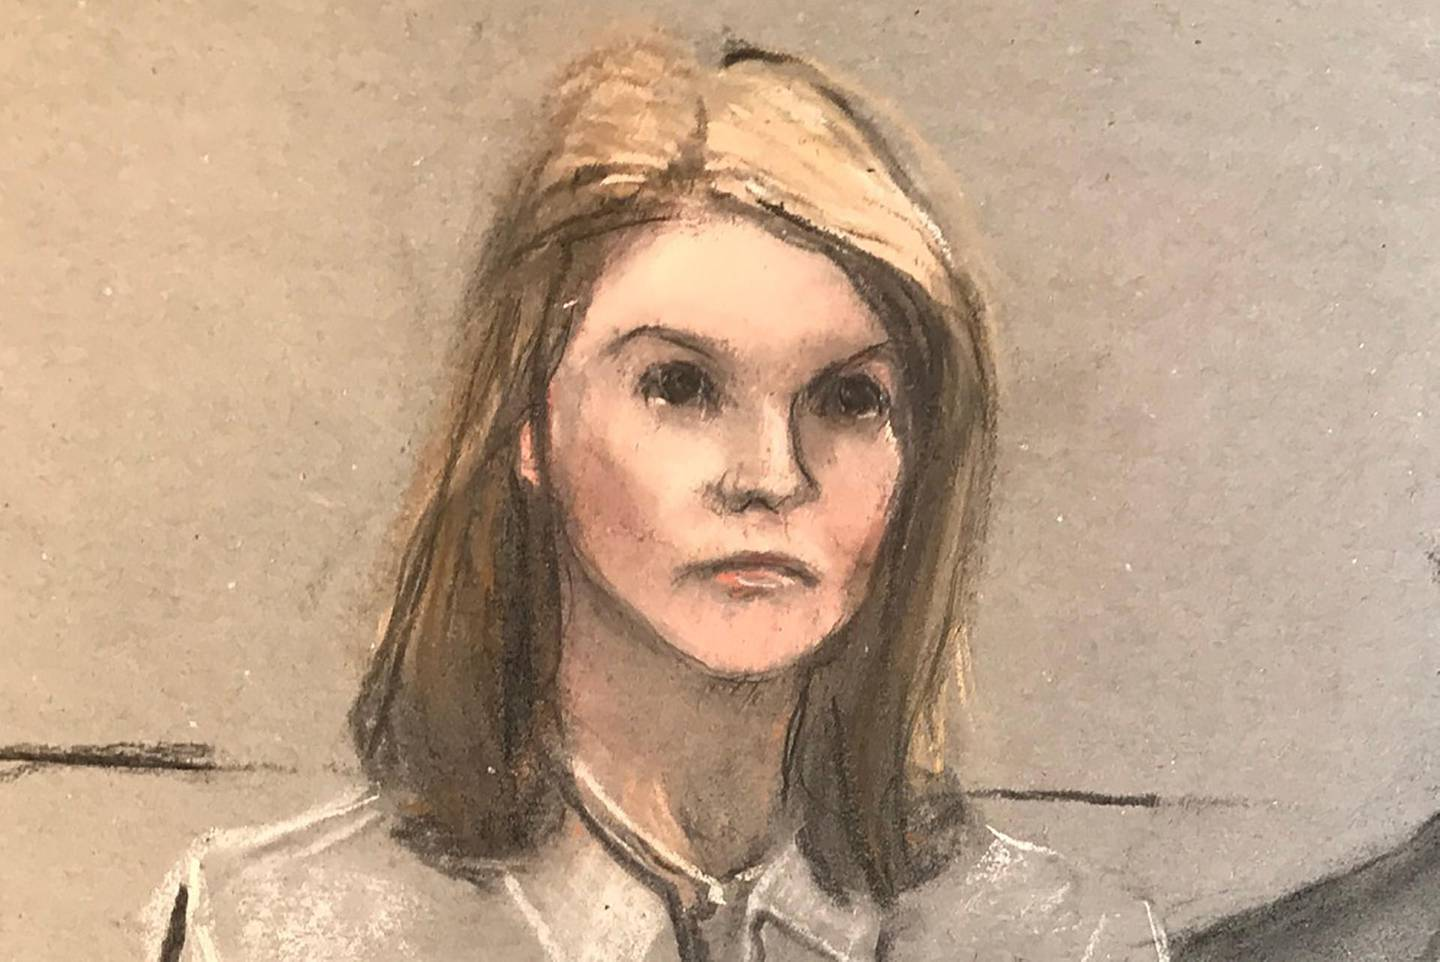 """""""Full House"""" actress Lori Loughlin appears on screen during a virtual court hearing where she was sentenced to a prison term of two months for participating in a vast U.S. college admissions scam, in a courtroom sketch in Boston, Massachusetts, U.S. August 21, 2020. Jane Collins via REUTERS.  NO RESALES. NO ARCHIVES. MANDATORY CREDIT"""